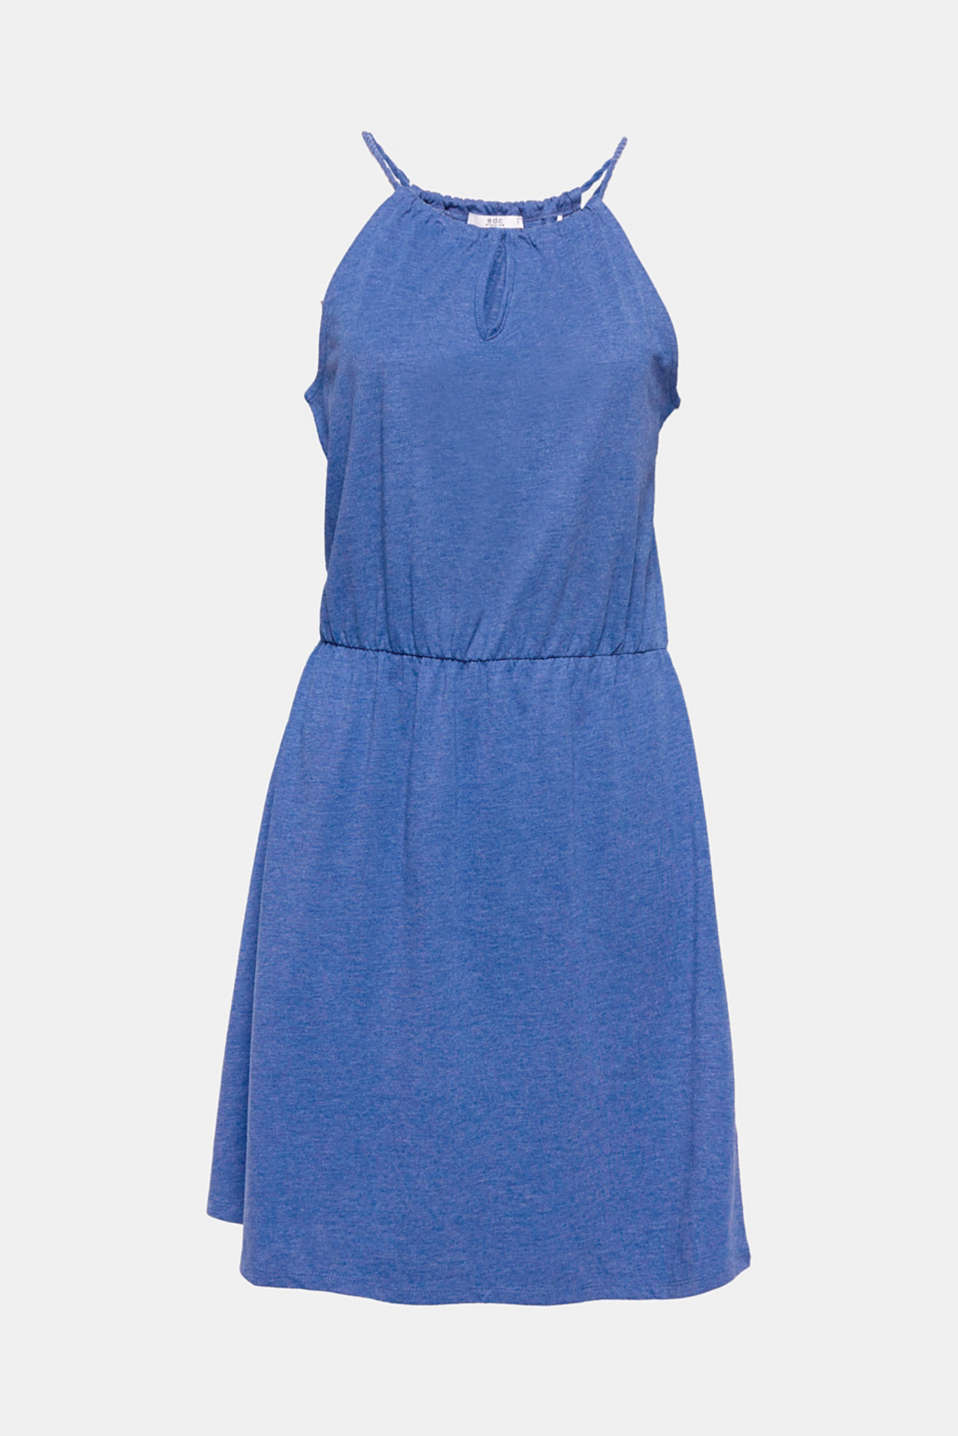 Perfect for holidays and leisure time: airy summer dress made of blended cotton with cut-away shoulders.